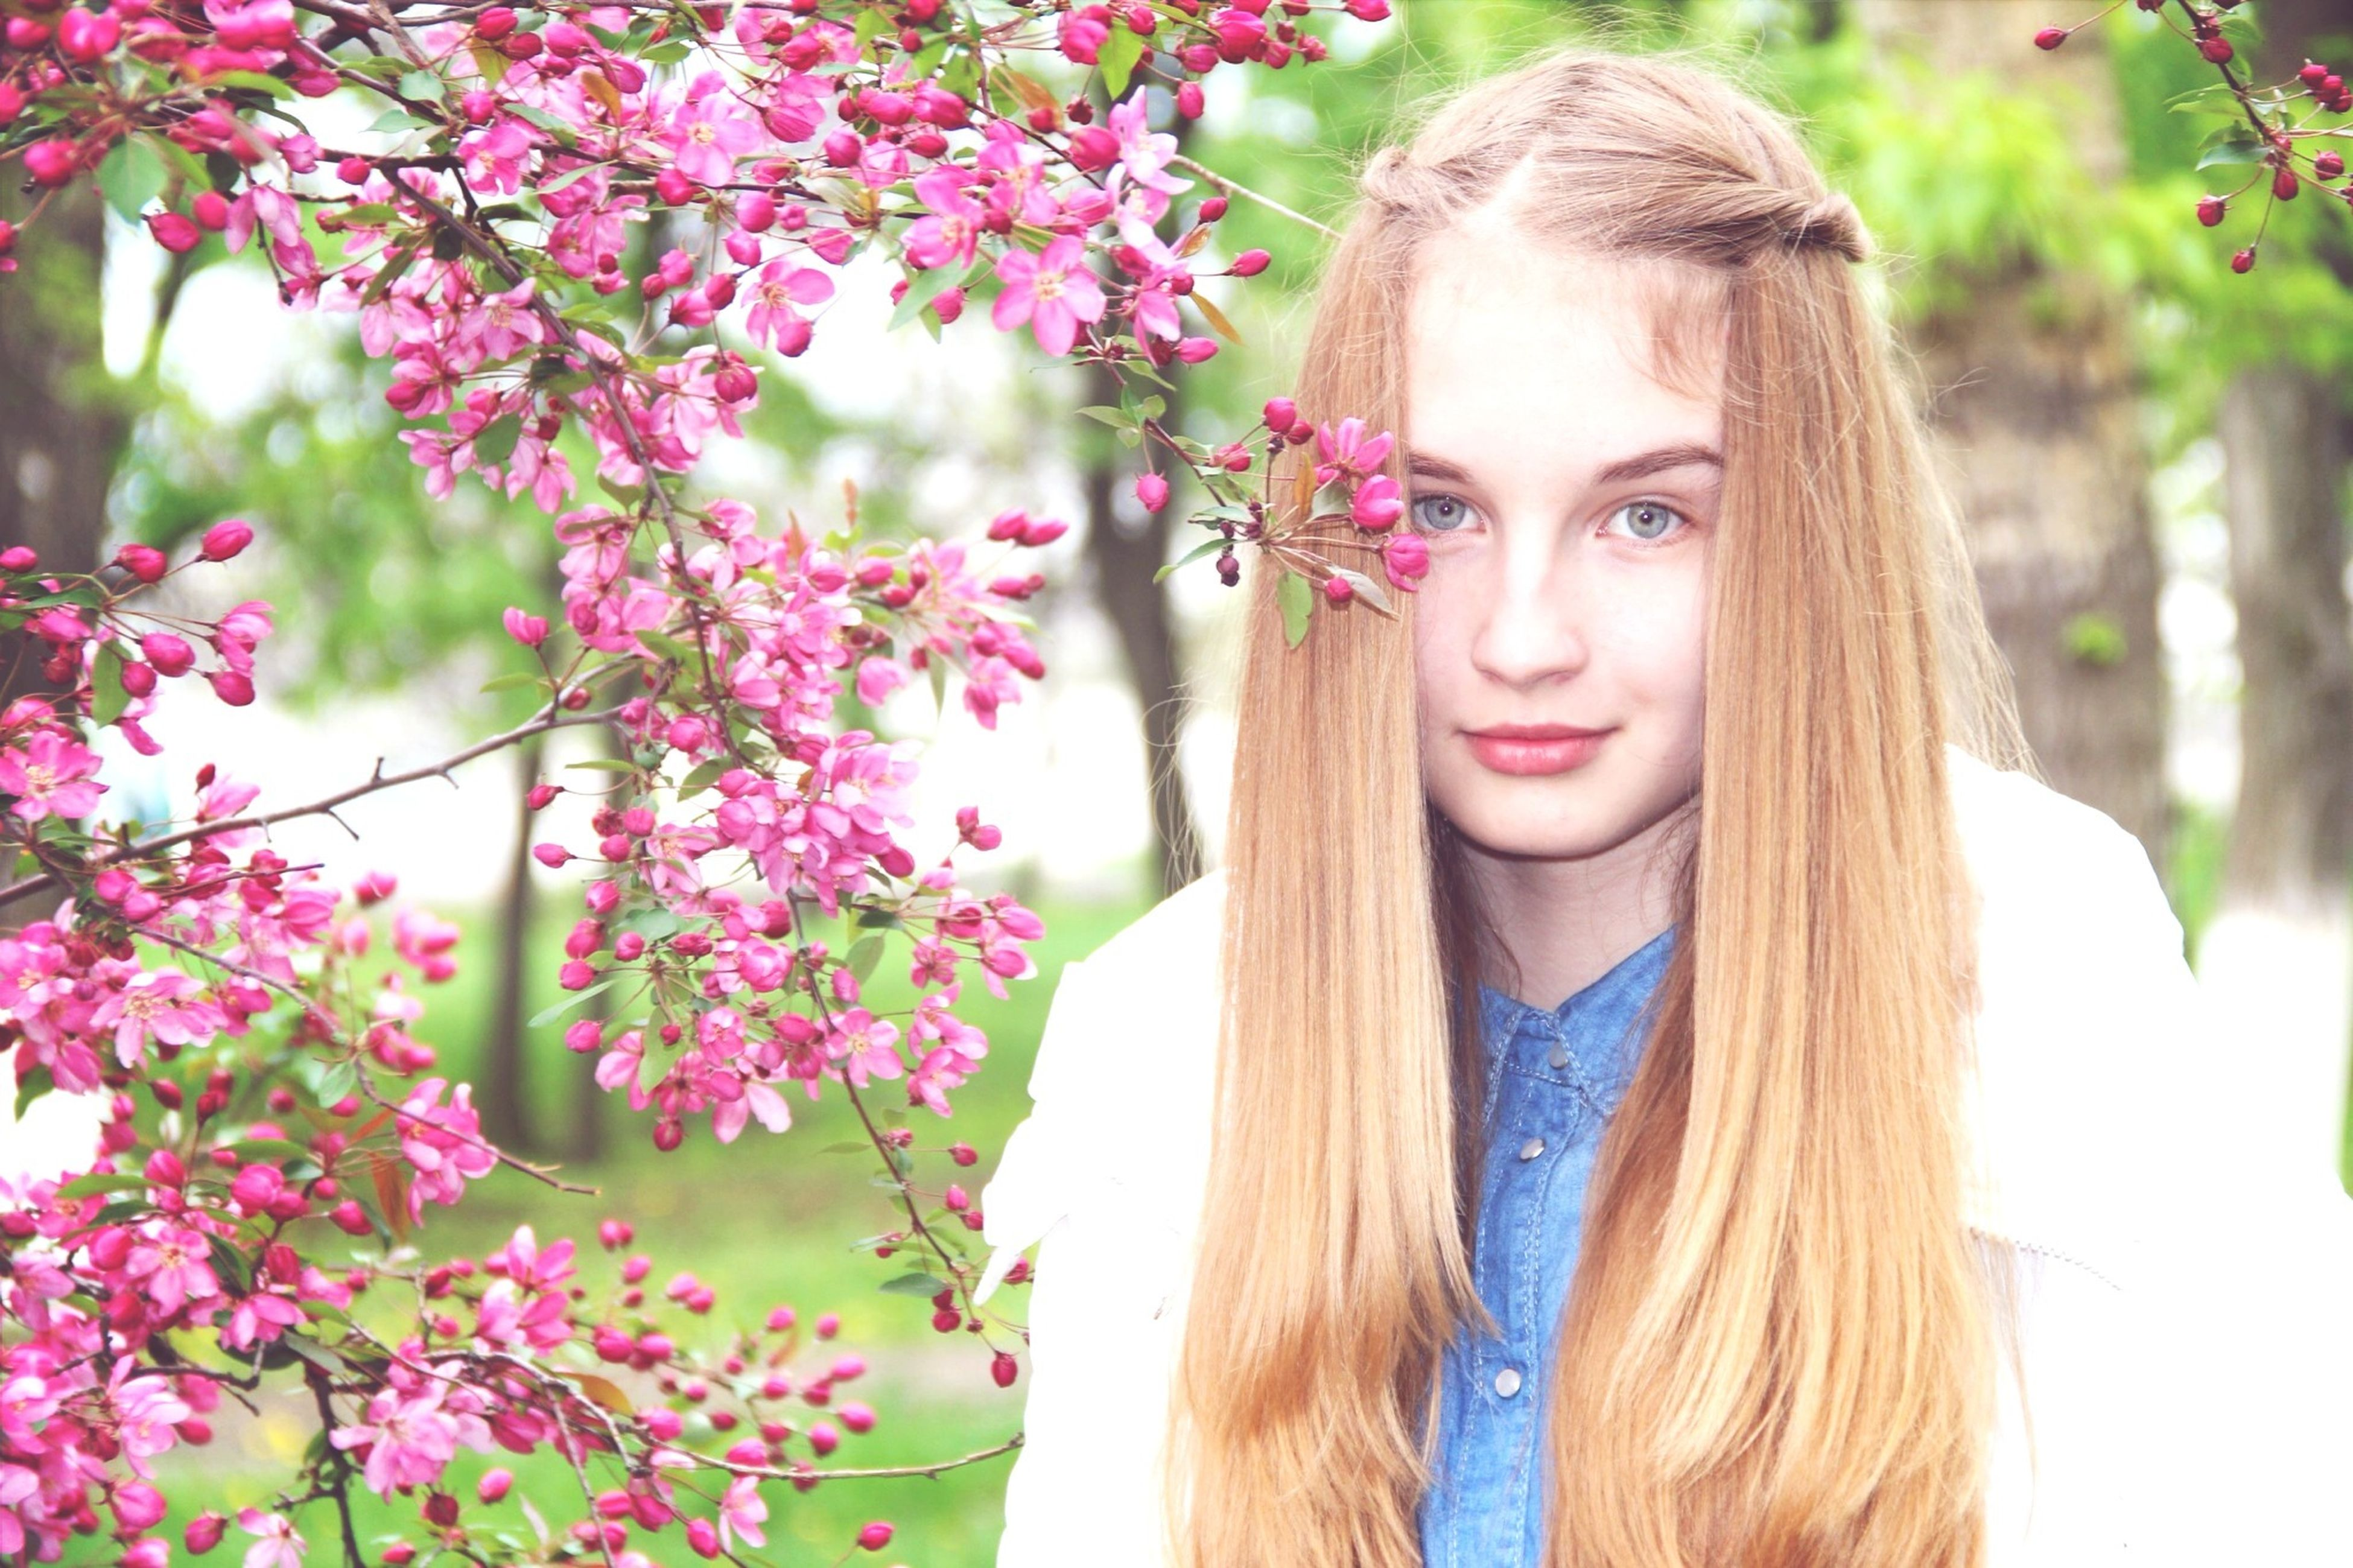 young adult, young women, person, smiling, looking at camera, portrait, front view, lifestyles, long hair, flower, leisure activity, casual clothing, happiness, tree, standing, focus on foreground, toothy smile